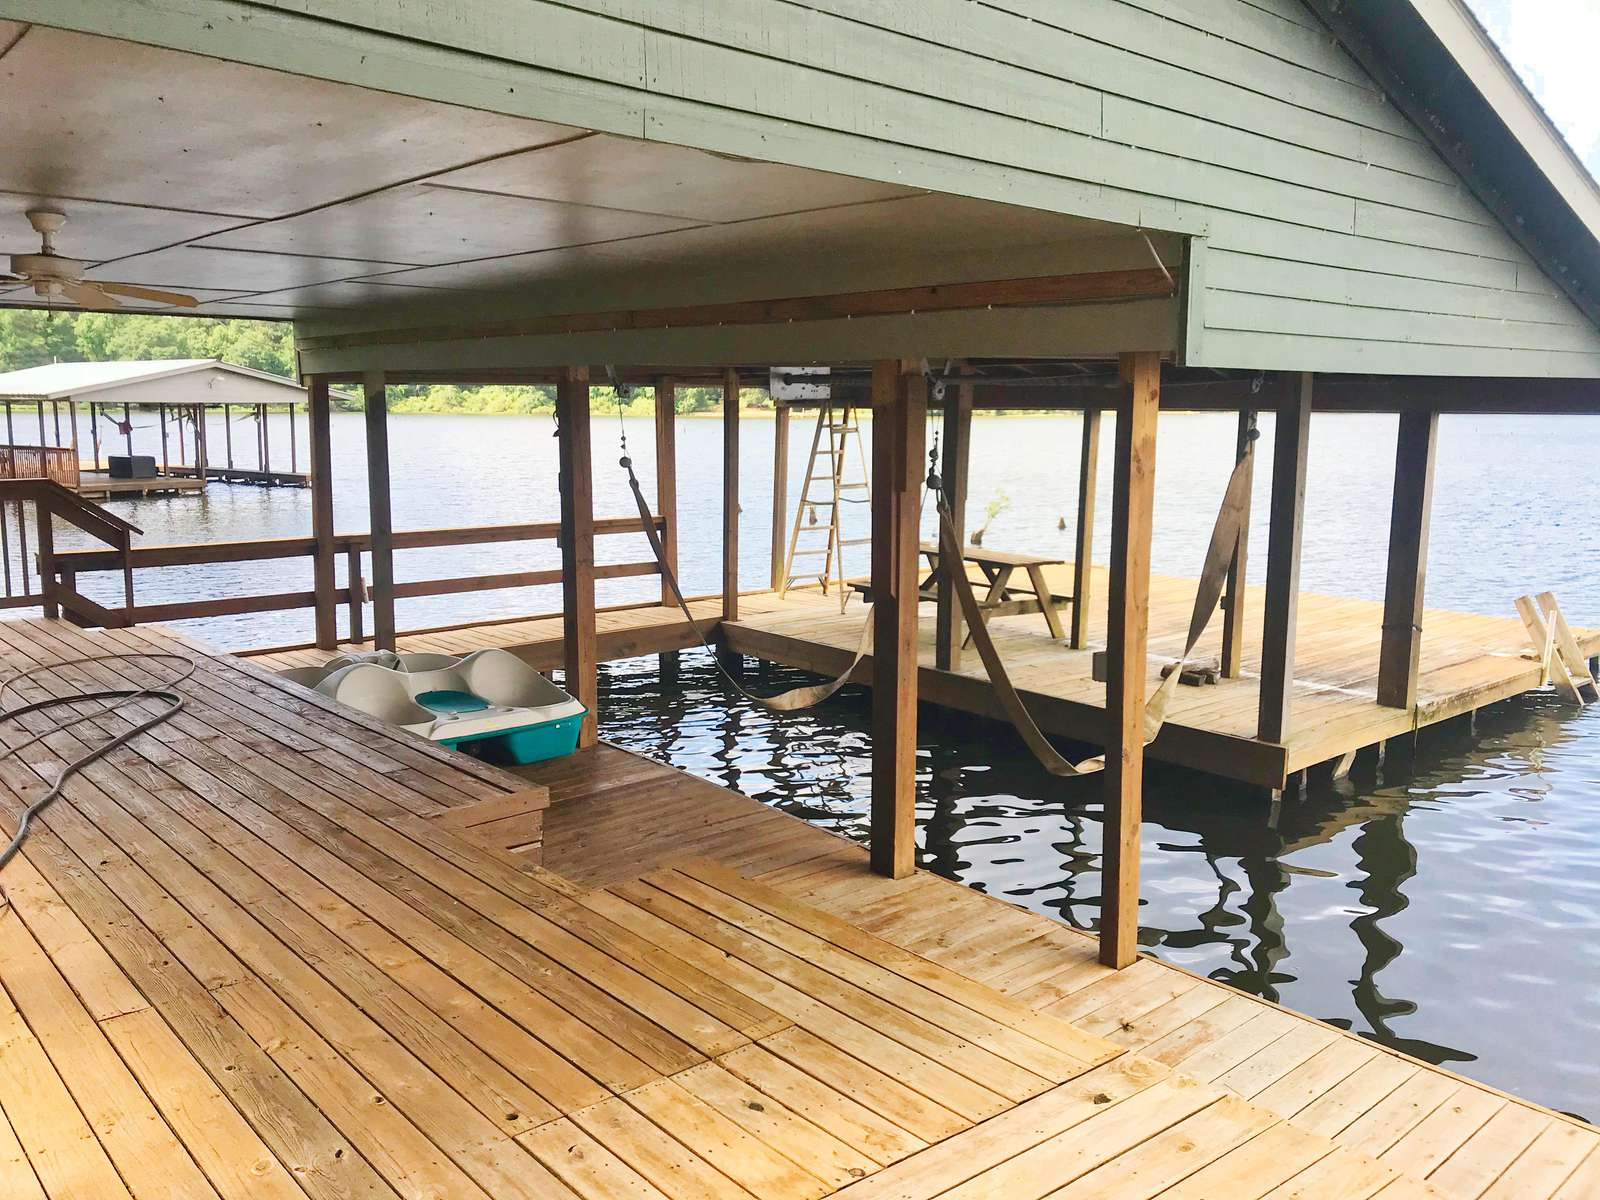 We are currently working on the dock and will have it done prior to Memorial weekend.